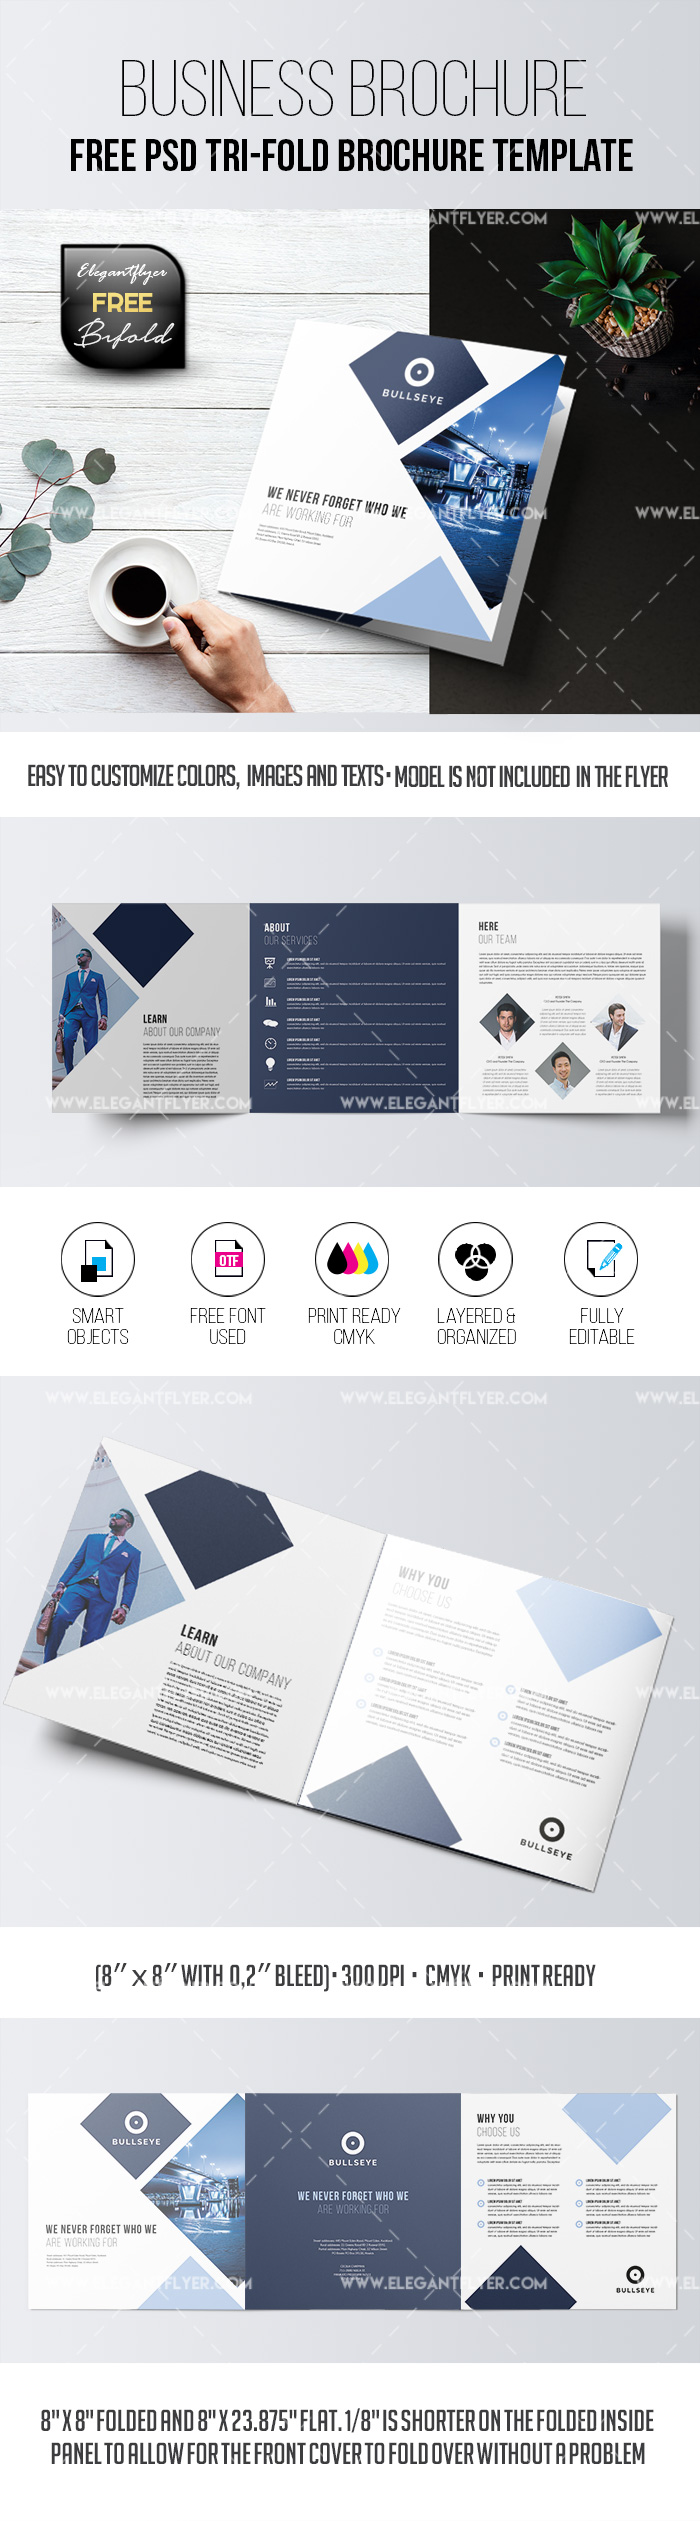 Free Business – Tri-Fold Brochure PSD Template